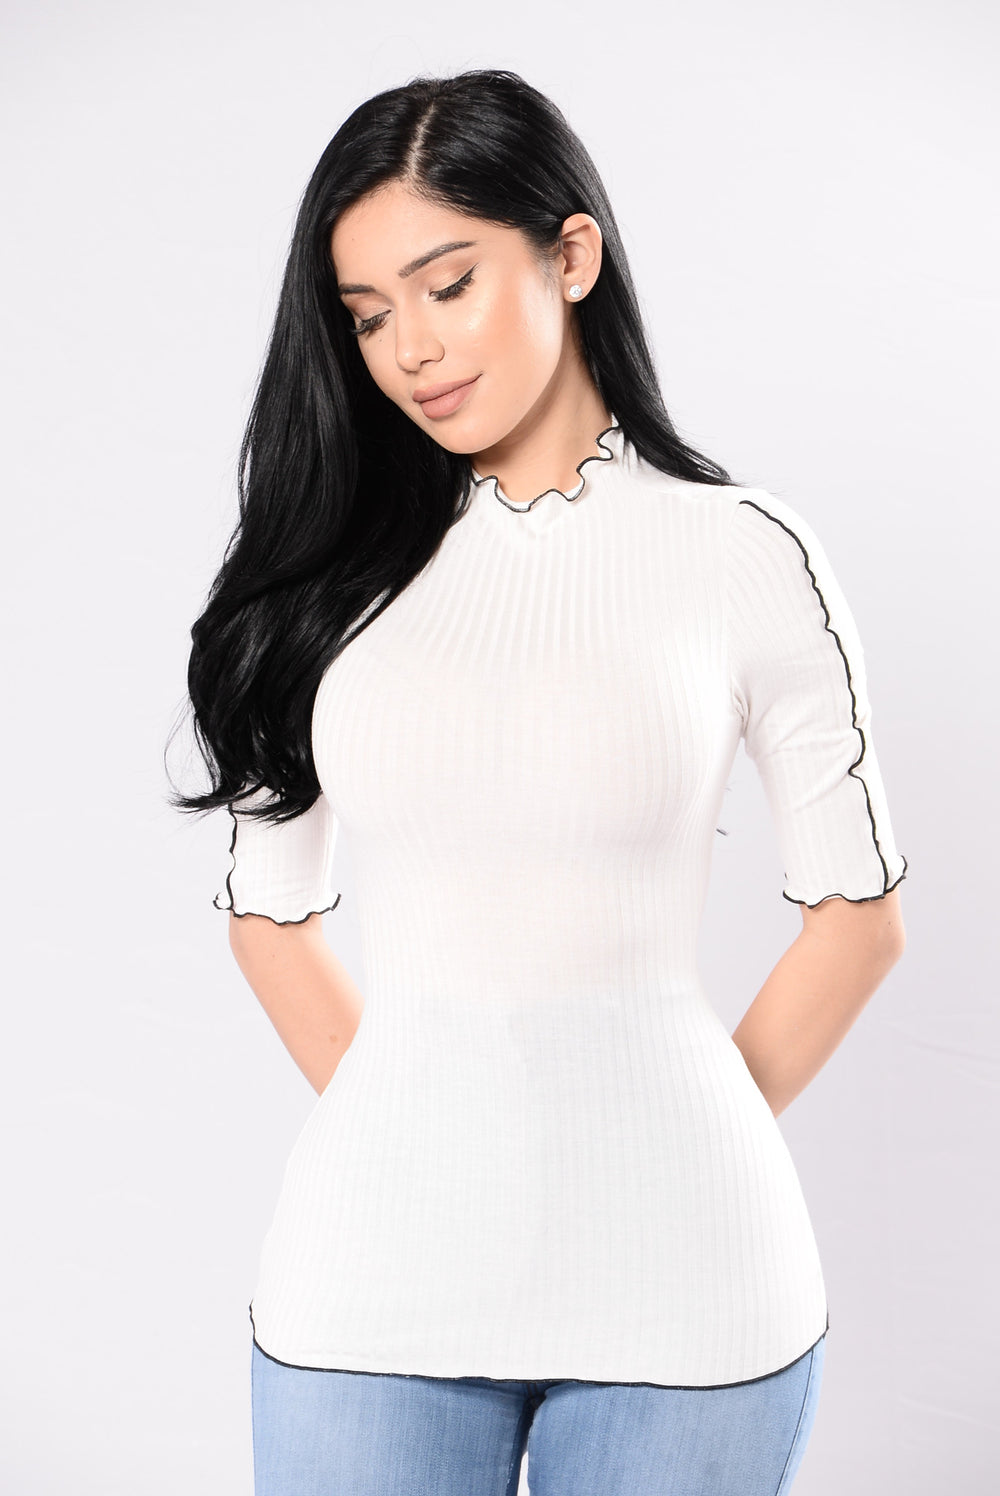 Already Taken Top - Ivory/Black